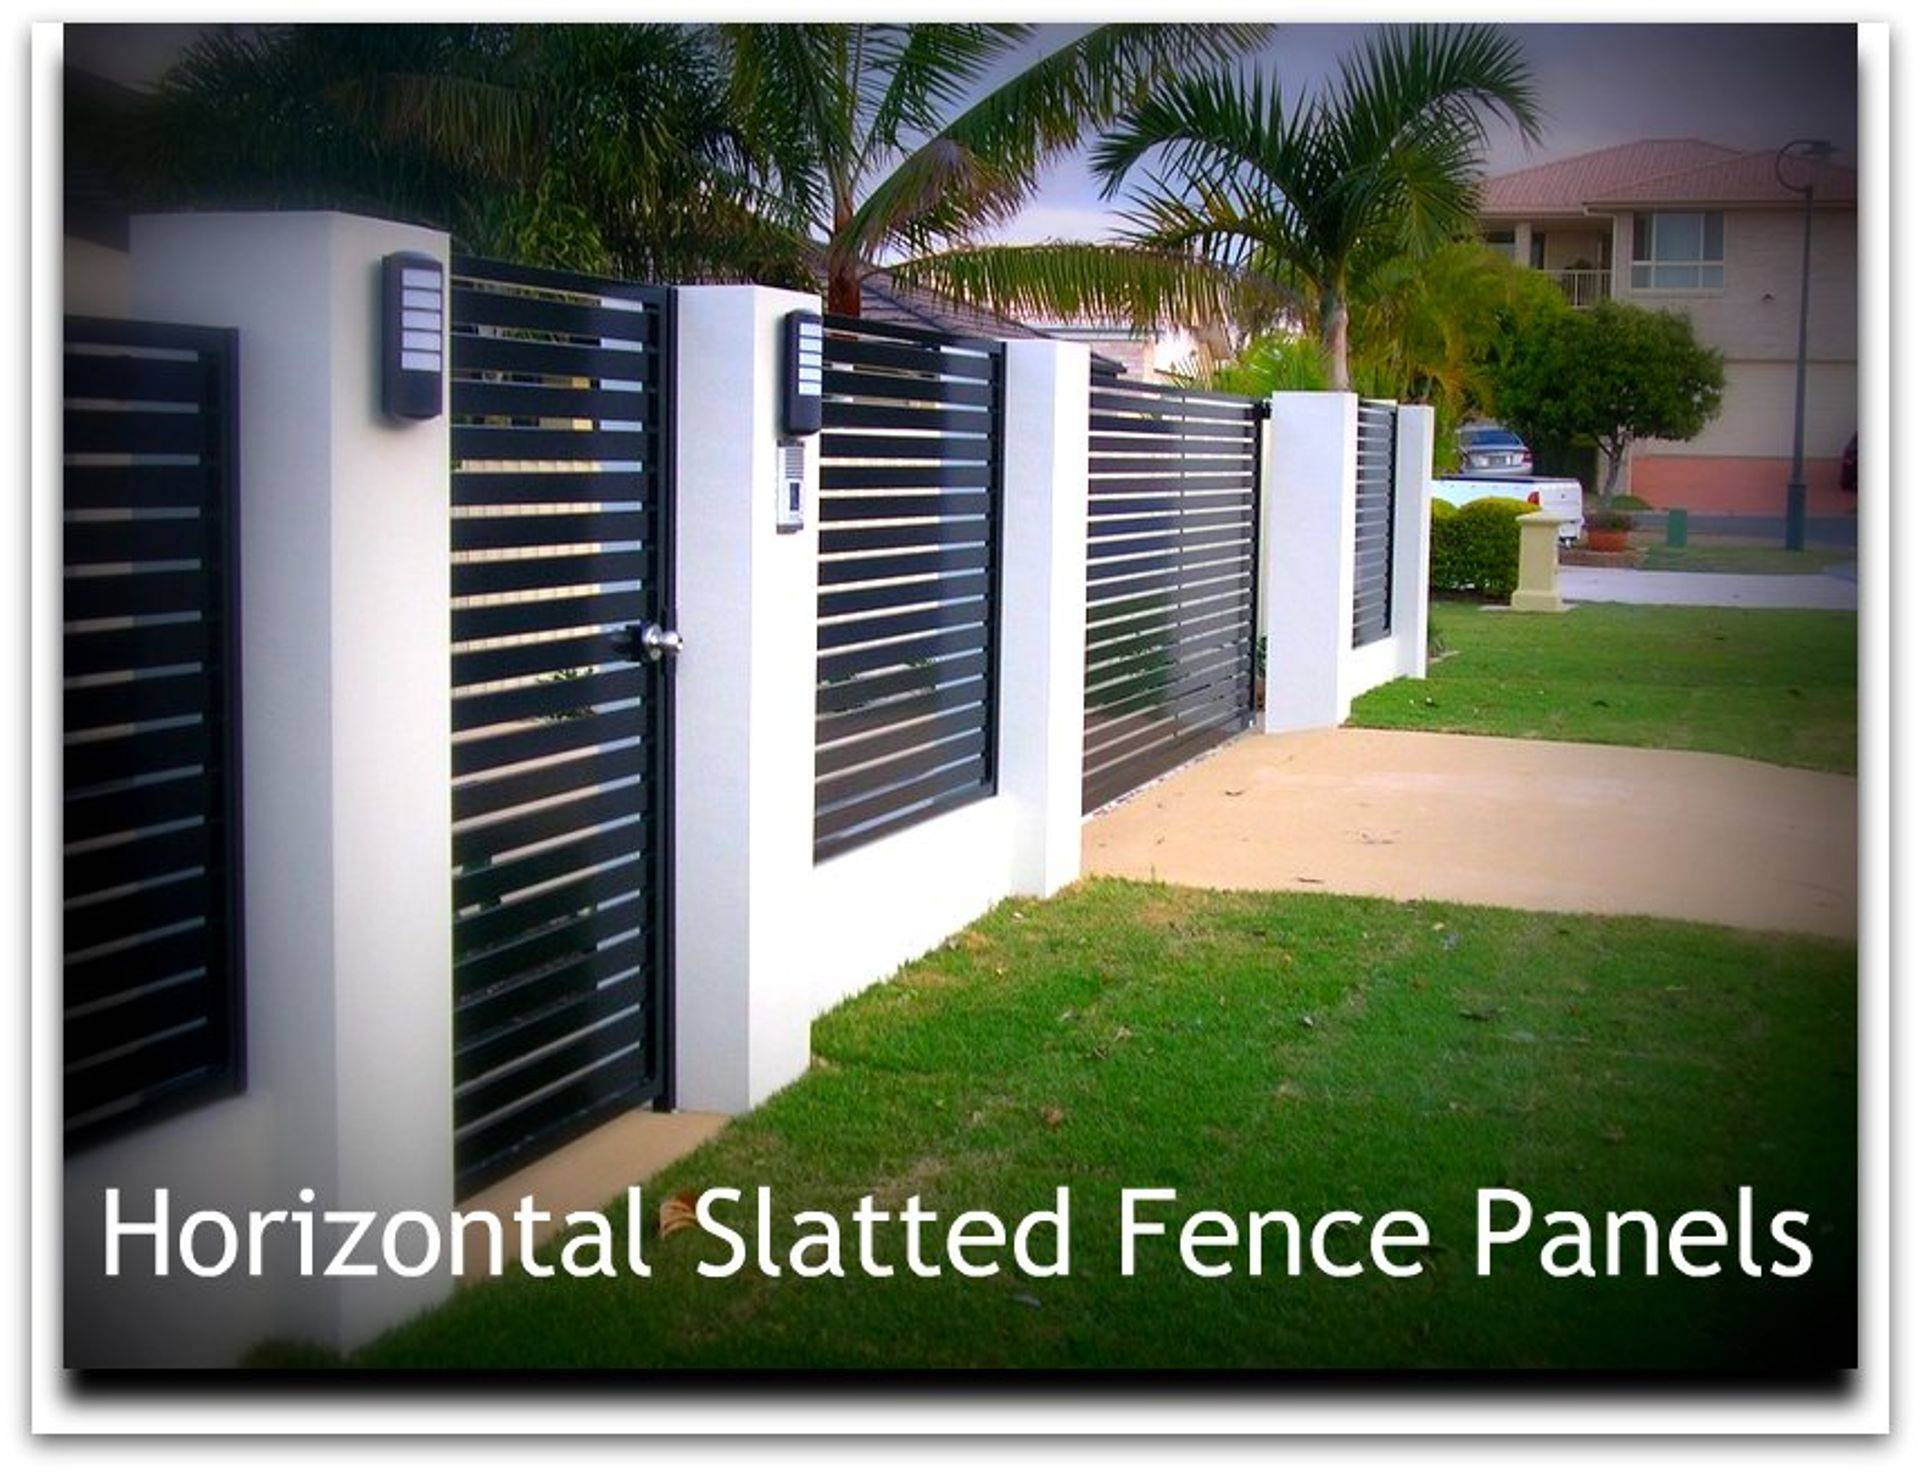 Horizontal slatted fence panels and gates